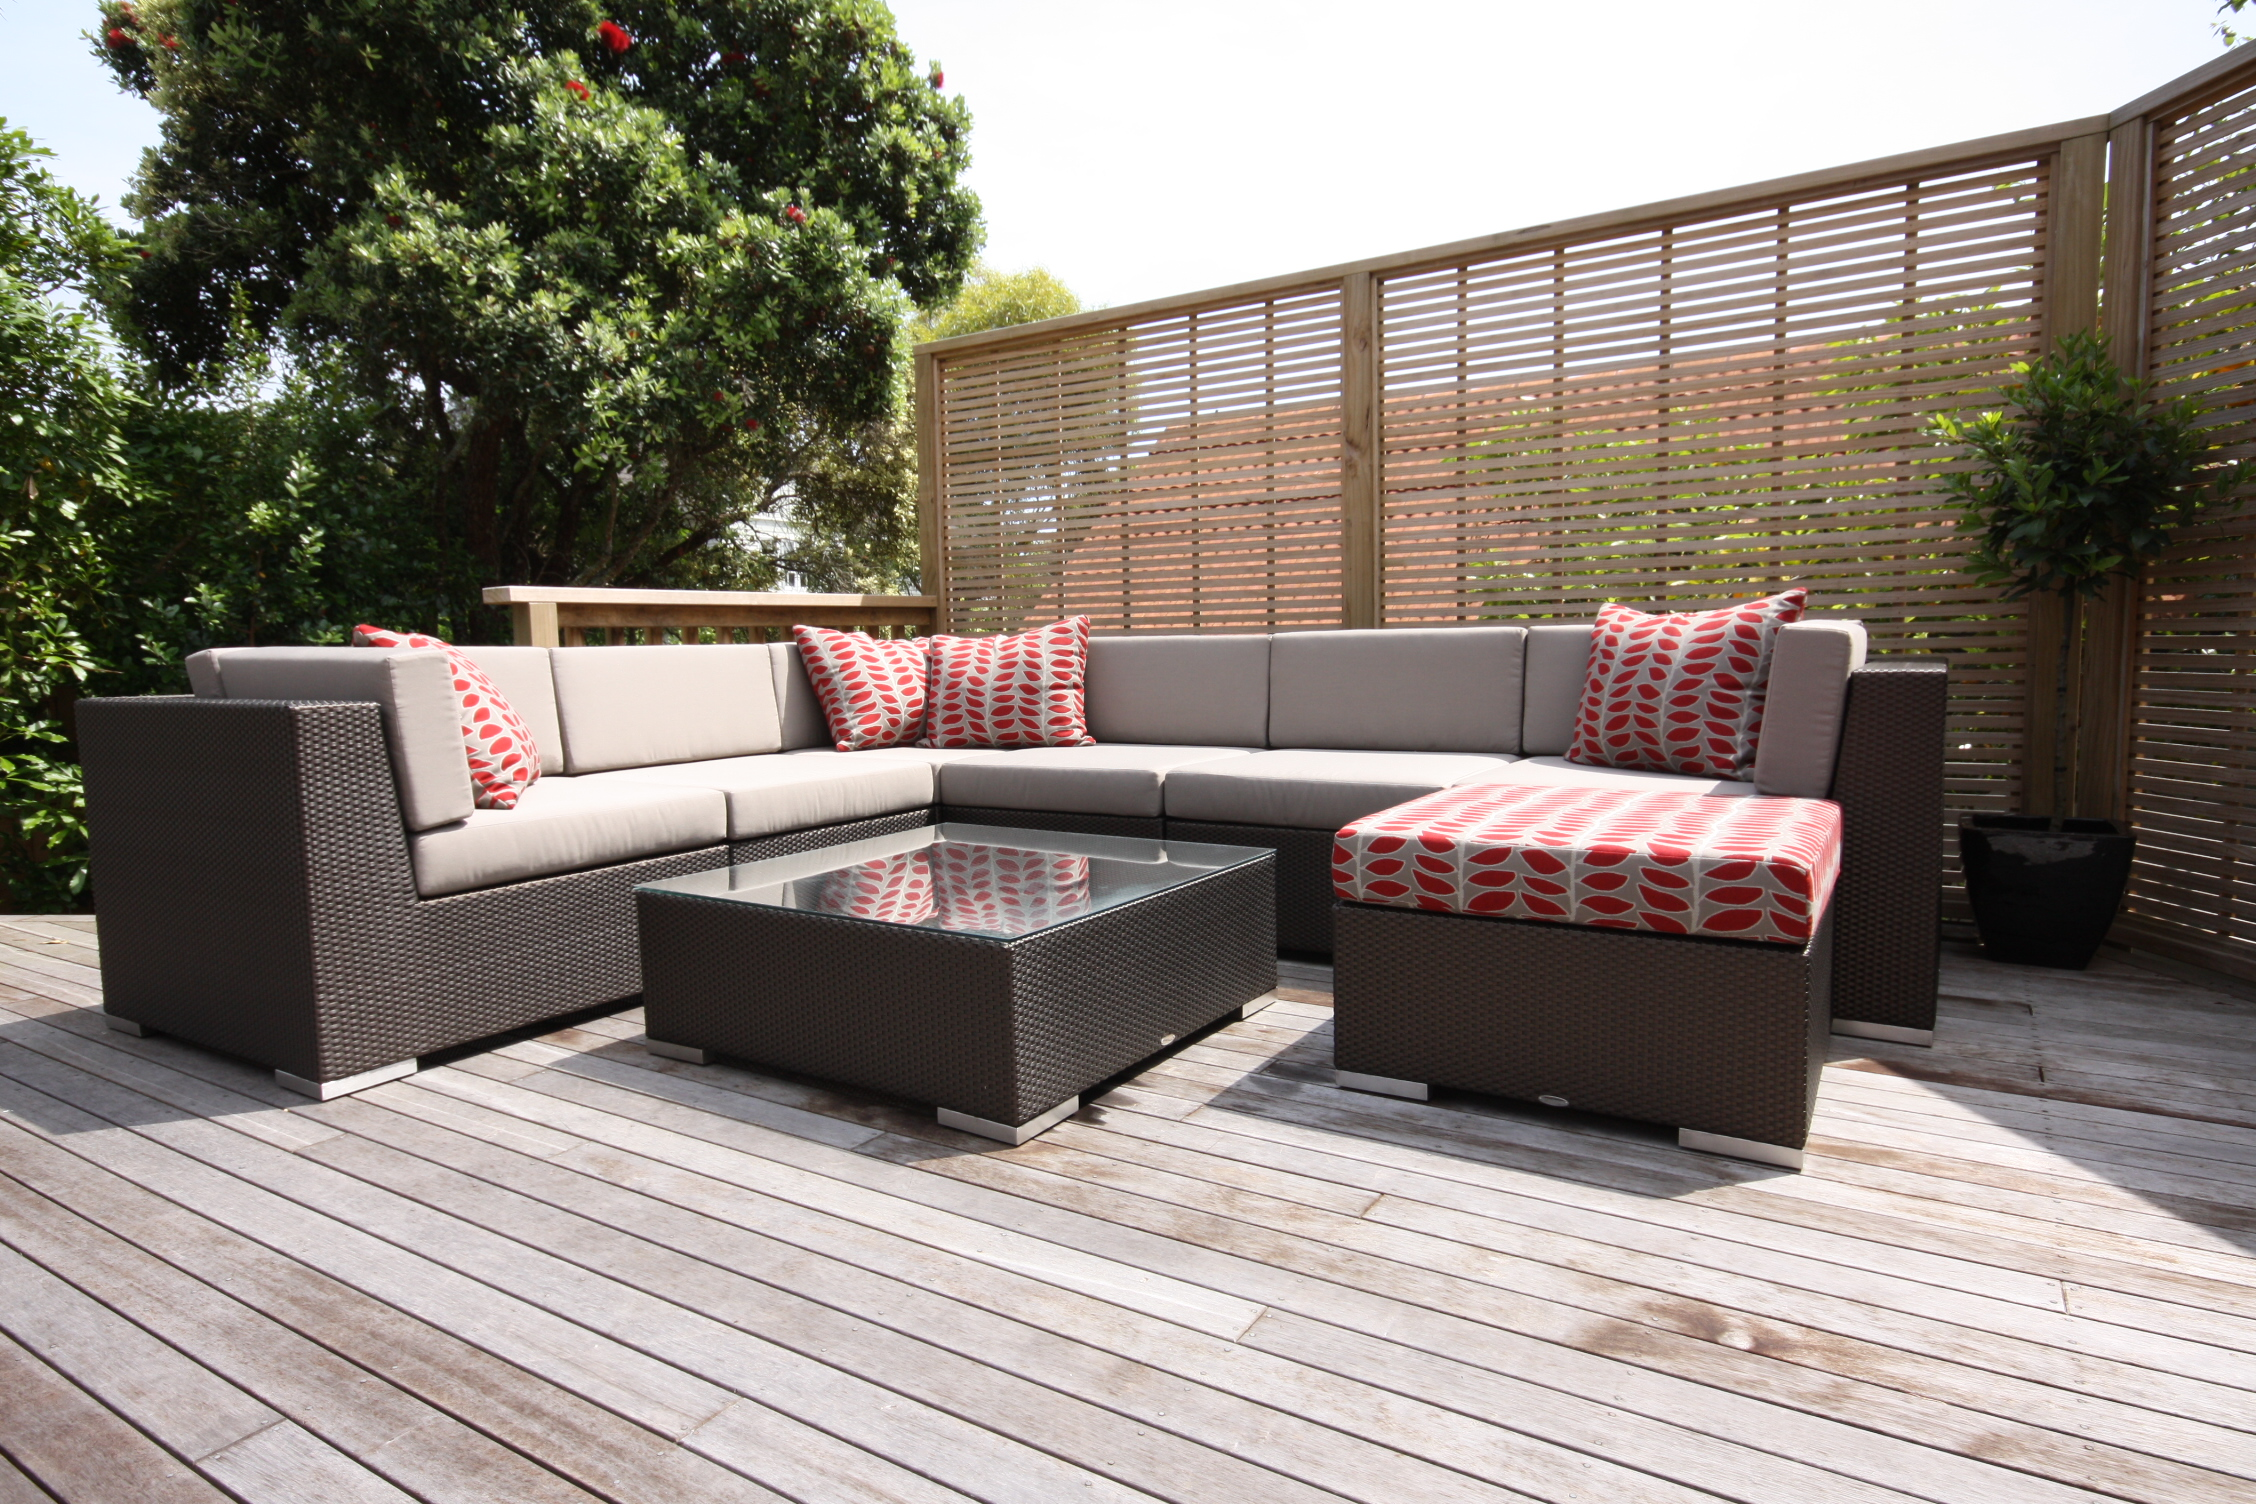 Show us your outdoor furniture